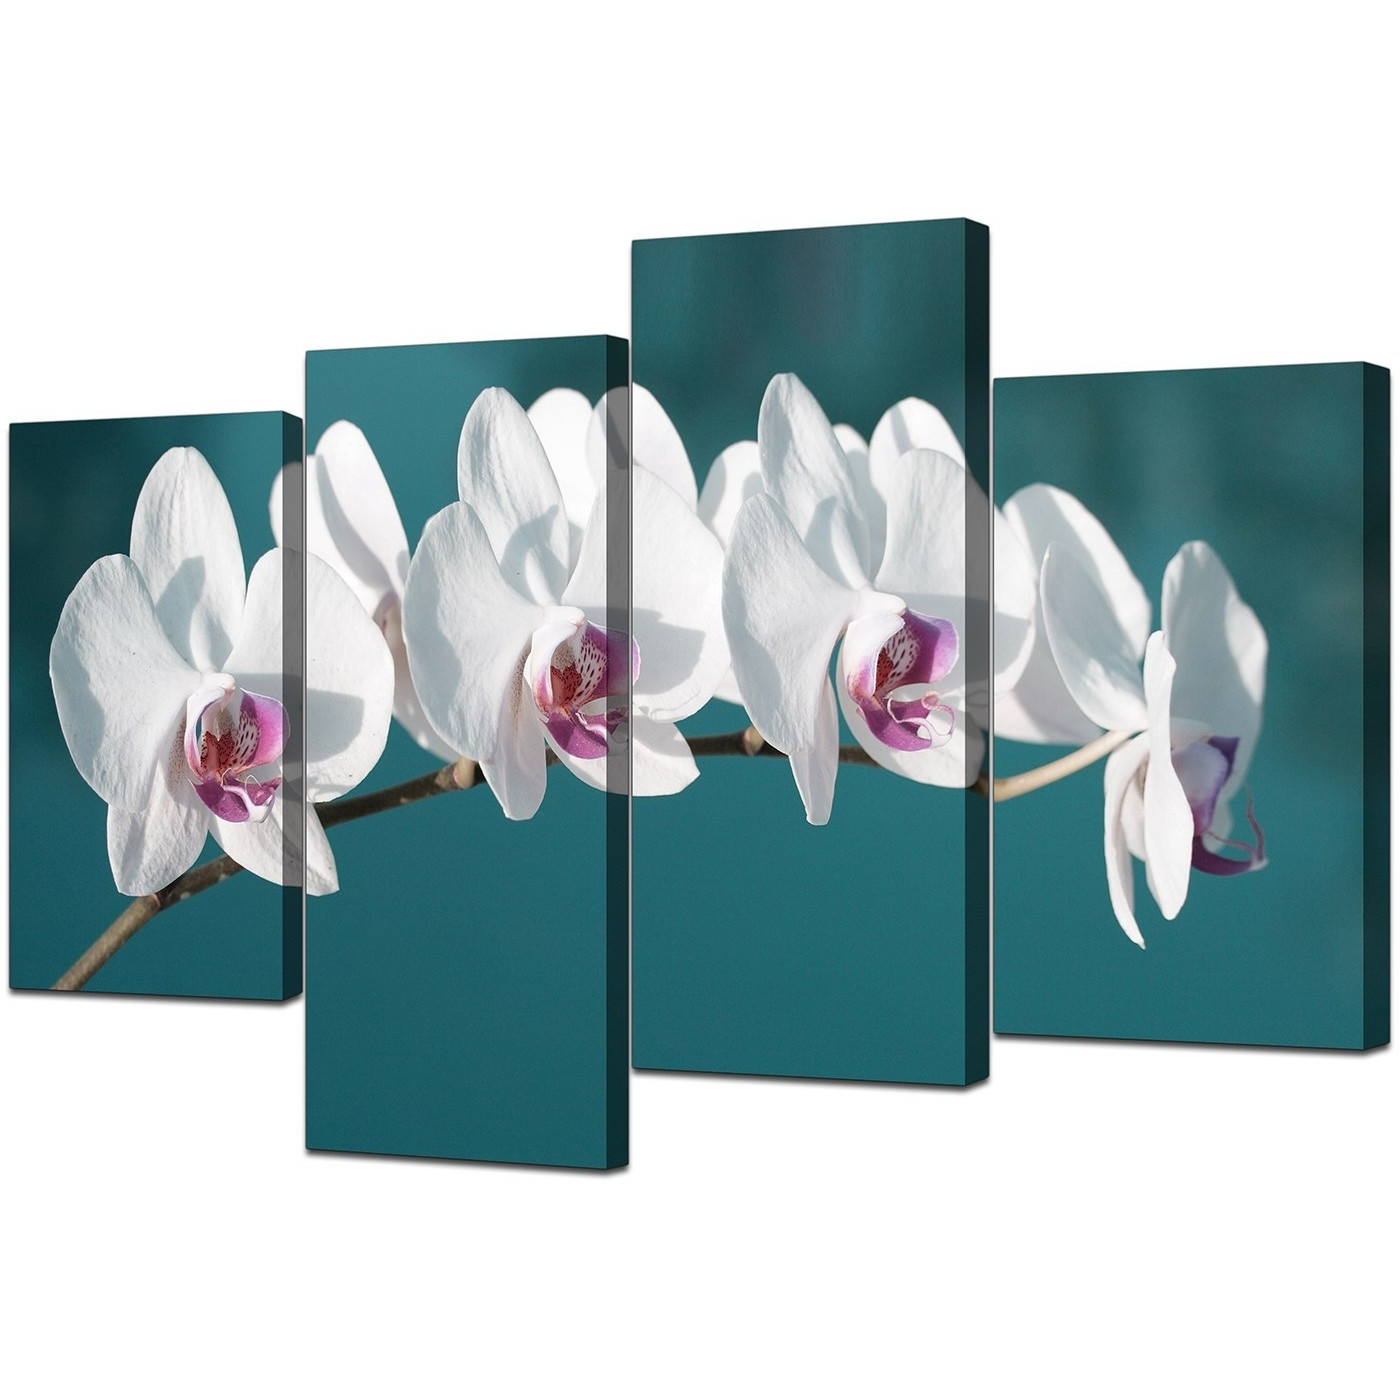 Popular Canvas Wall Art Of White Orchids On Teal Background For Your Office With Regard To Orchid Canvas Wall Art (View 13 of 15)